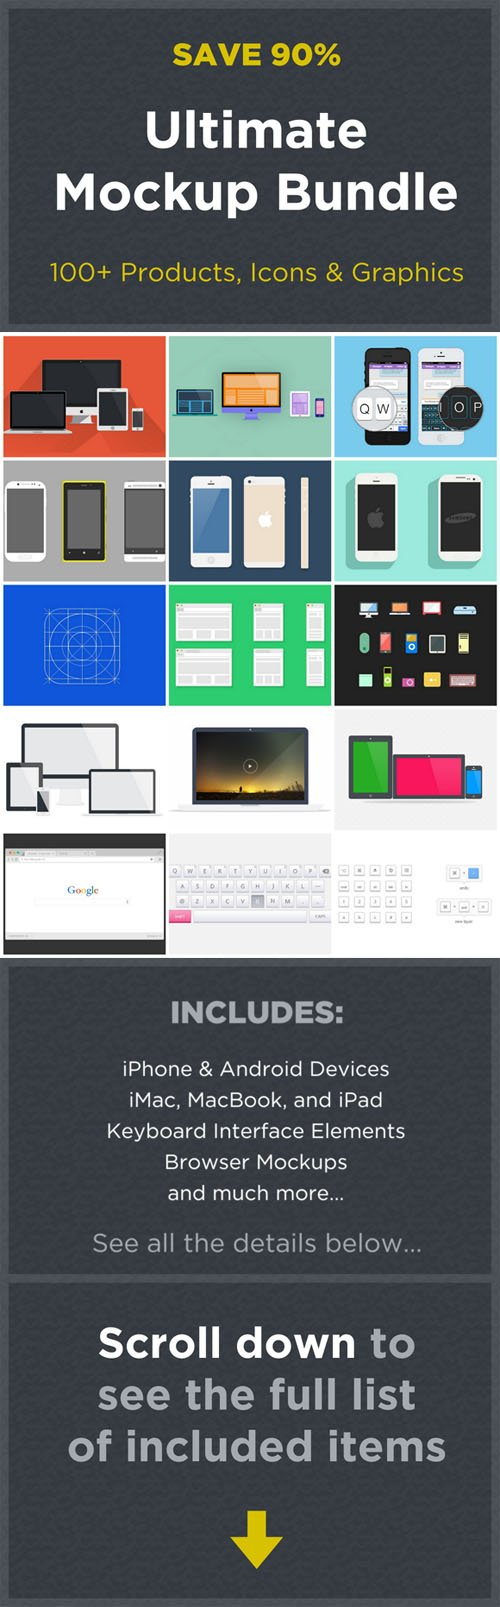 Ultimate Mockup Bundle - Creativemarket 100656